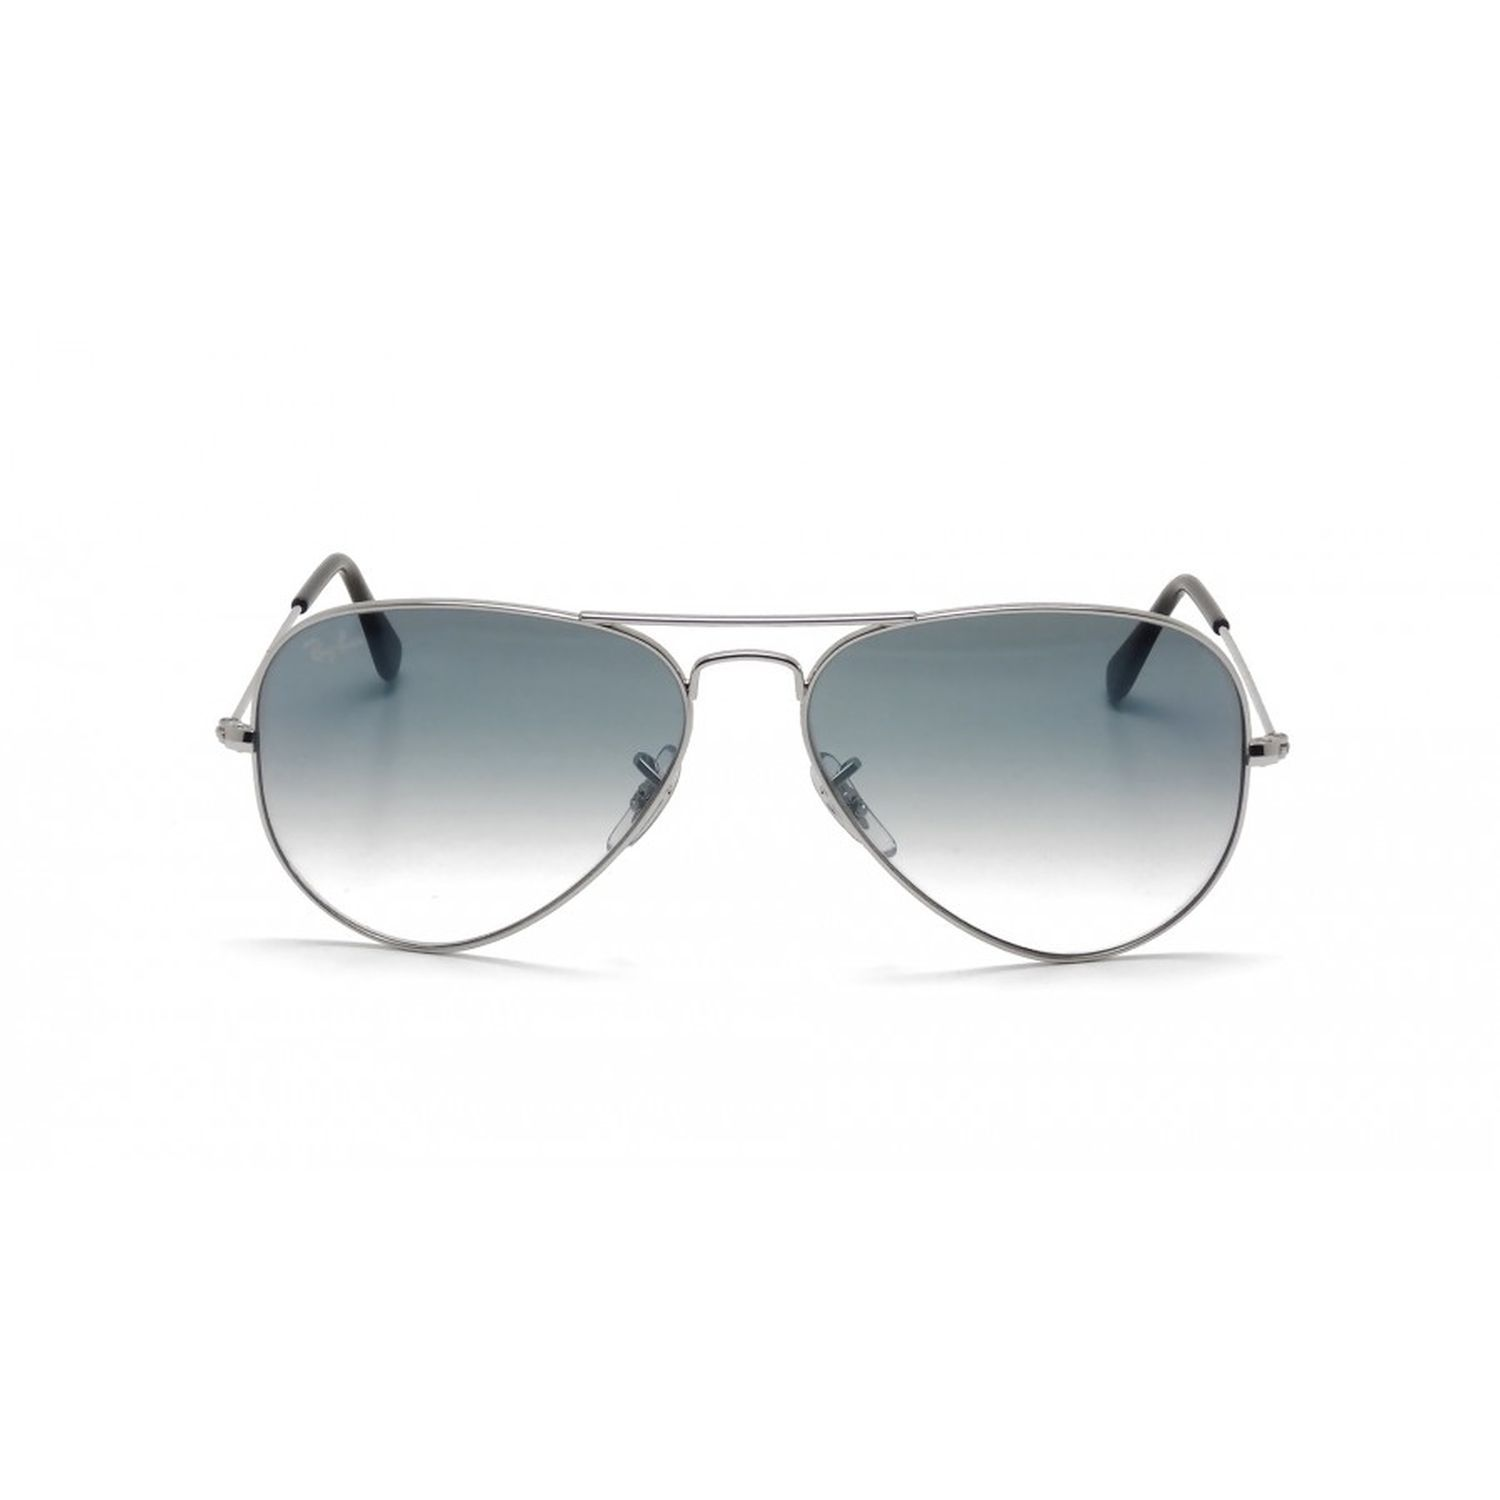 7e202559ee Ray-Ban RB3025-003-3F Aviator Sunglasses Silver Frame Blue ...